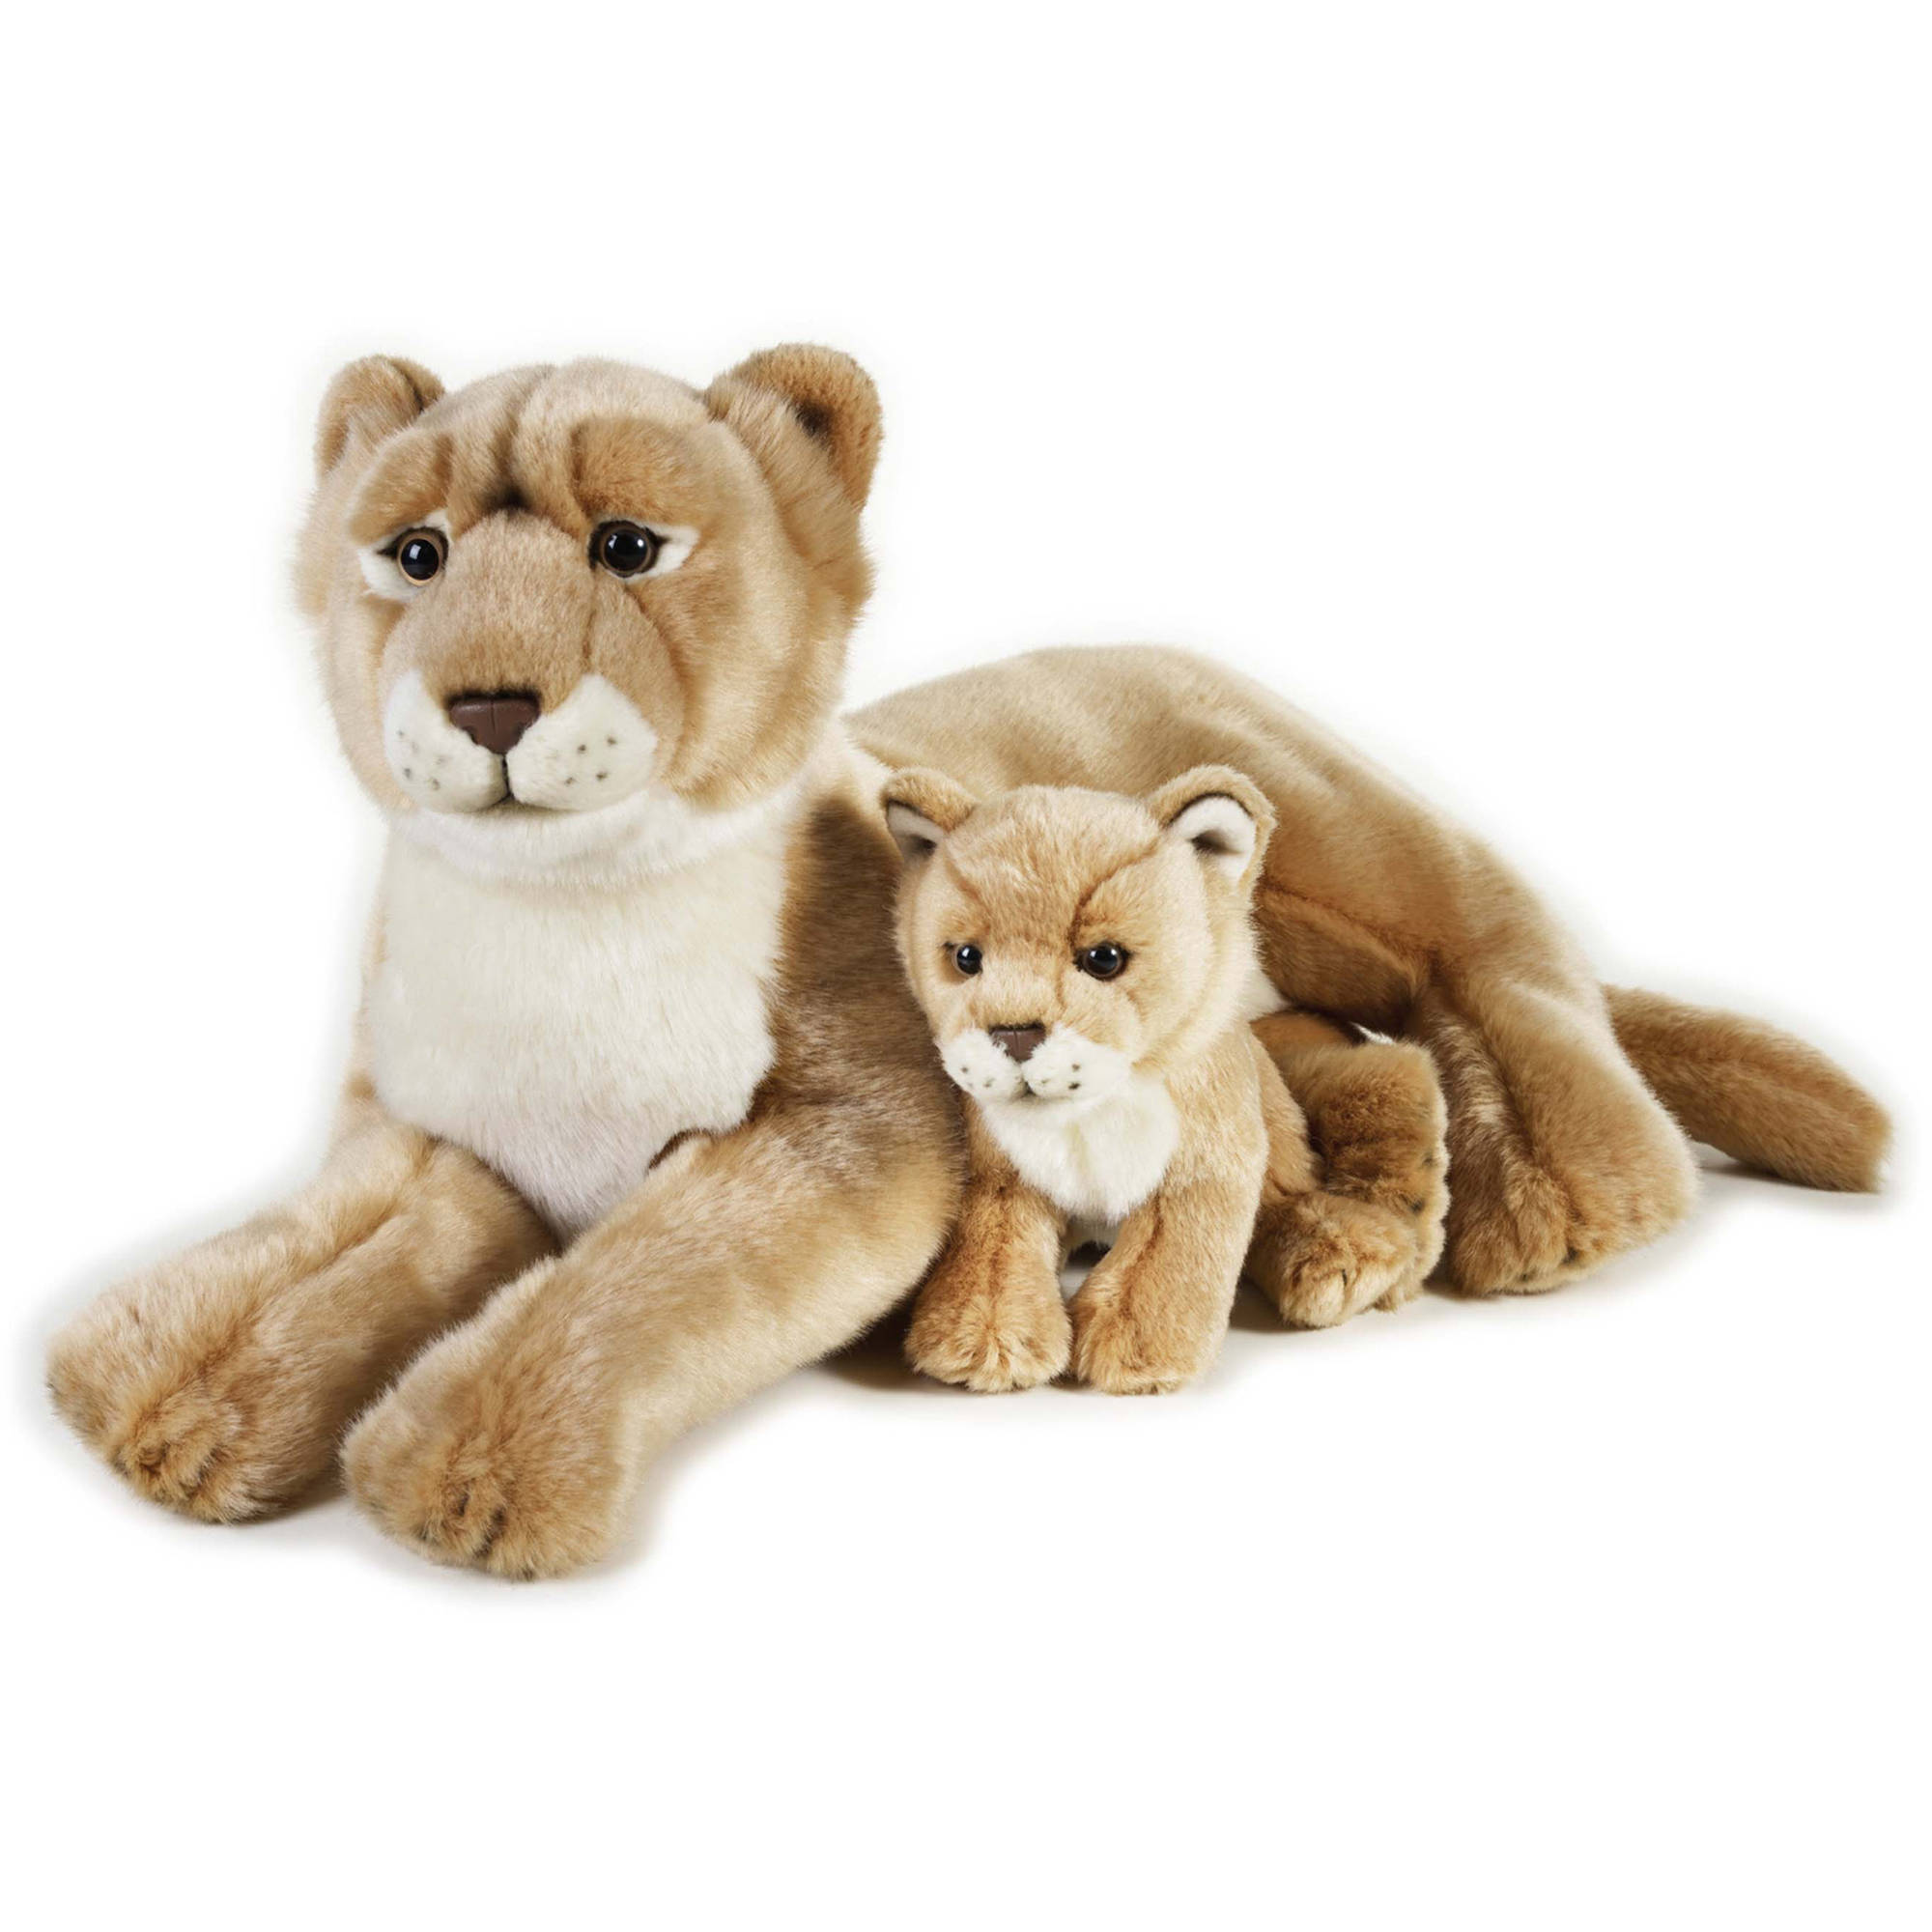 Lelly National Geographic Plush, Lioness with Baby by Venturelli